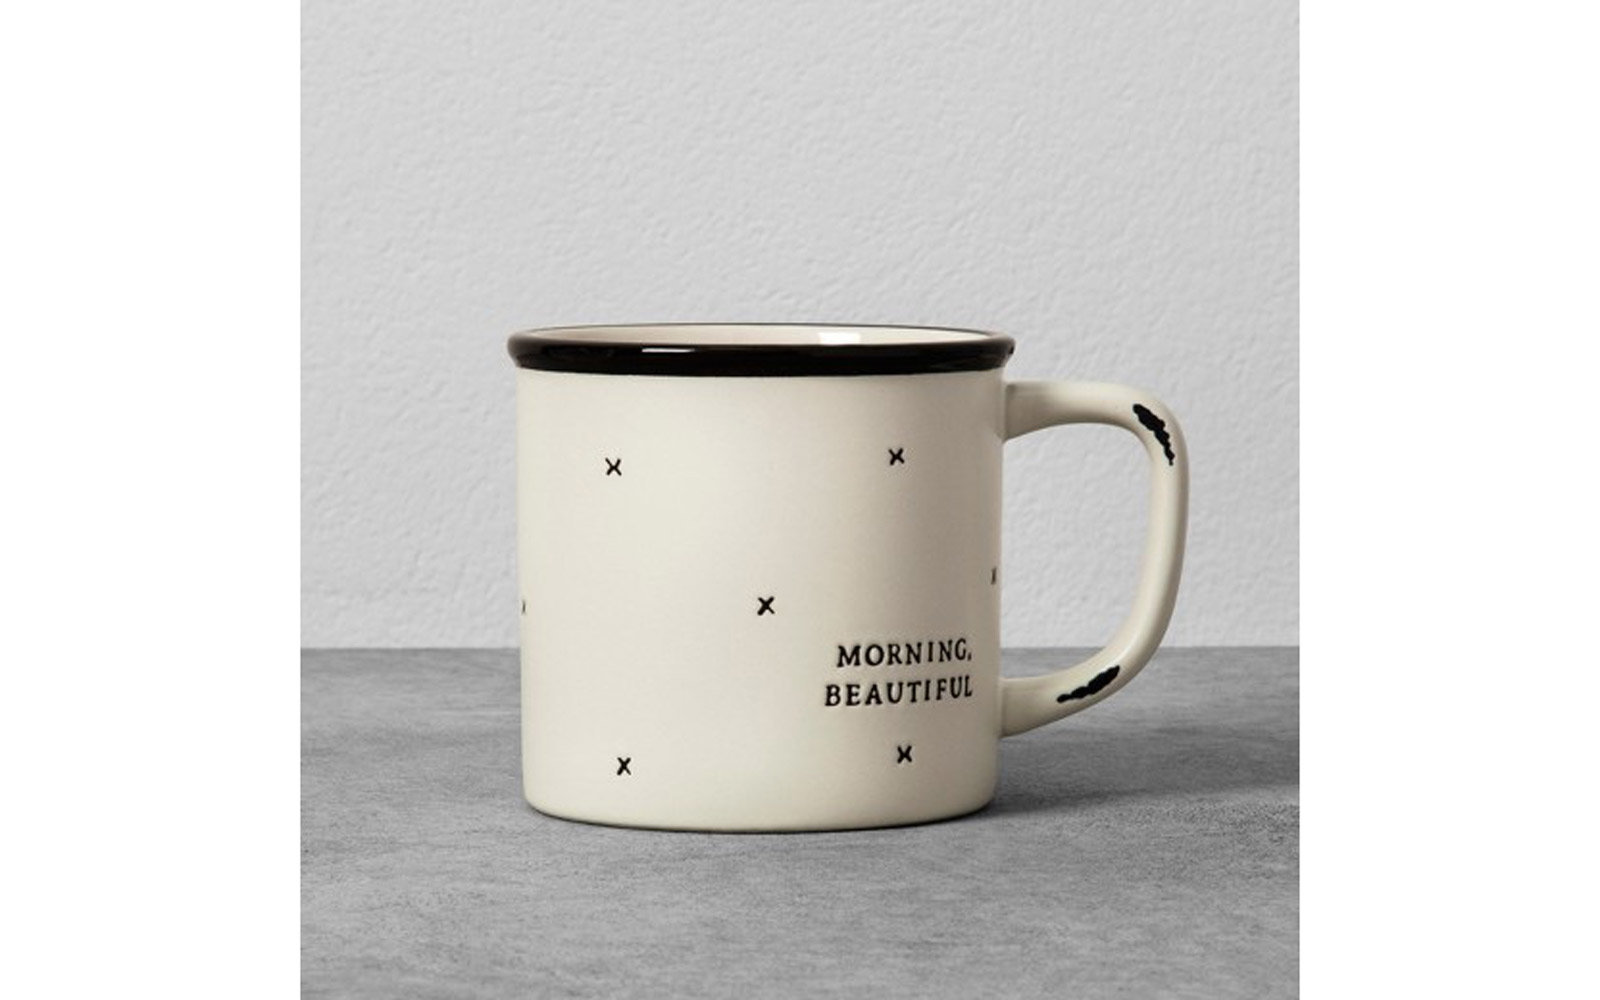 Hearth & Hand with Magnolia: Stoneware Mug